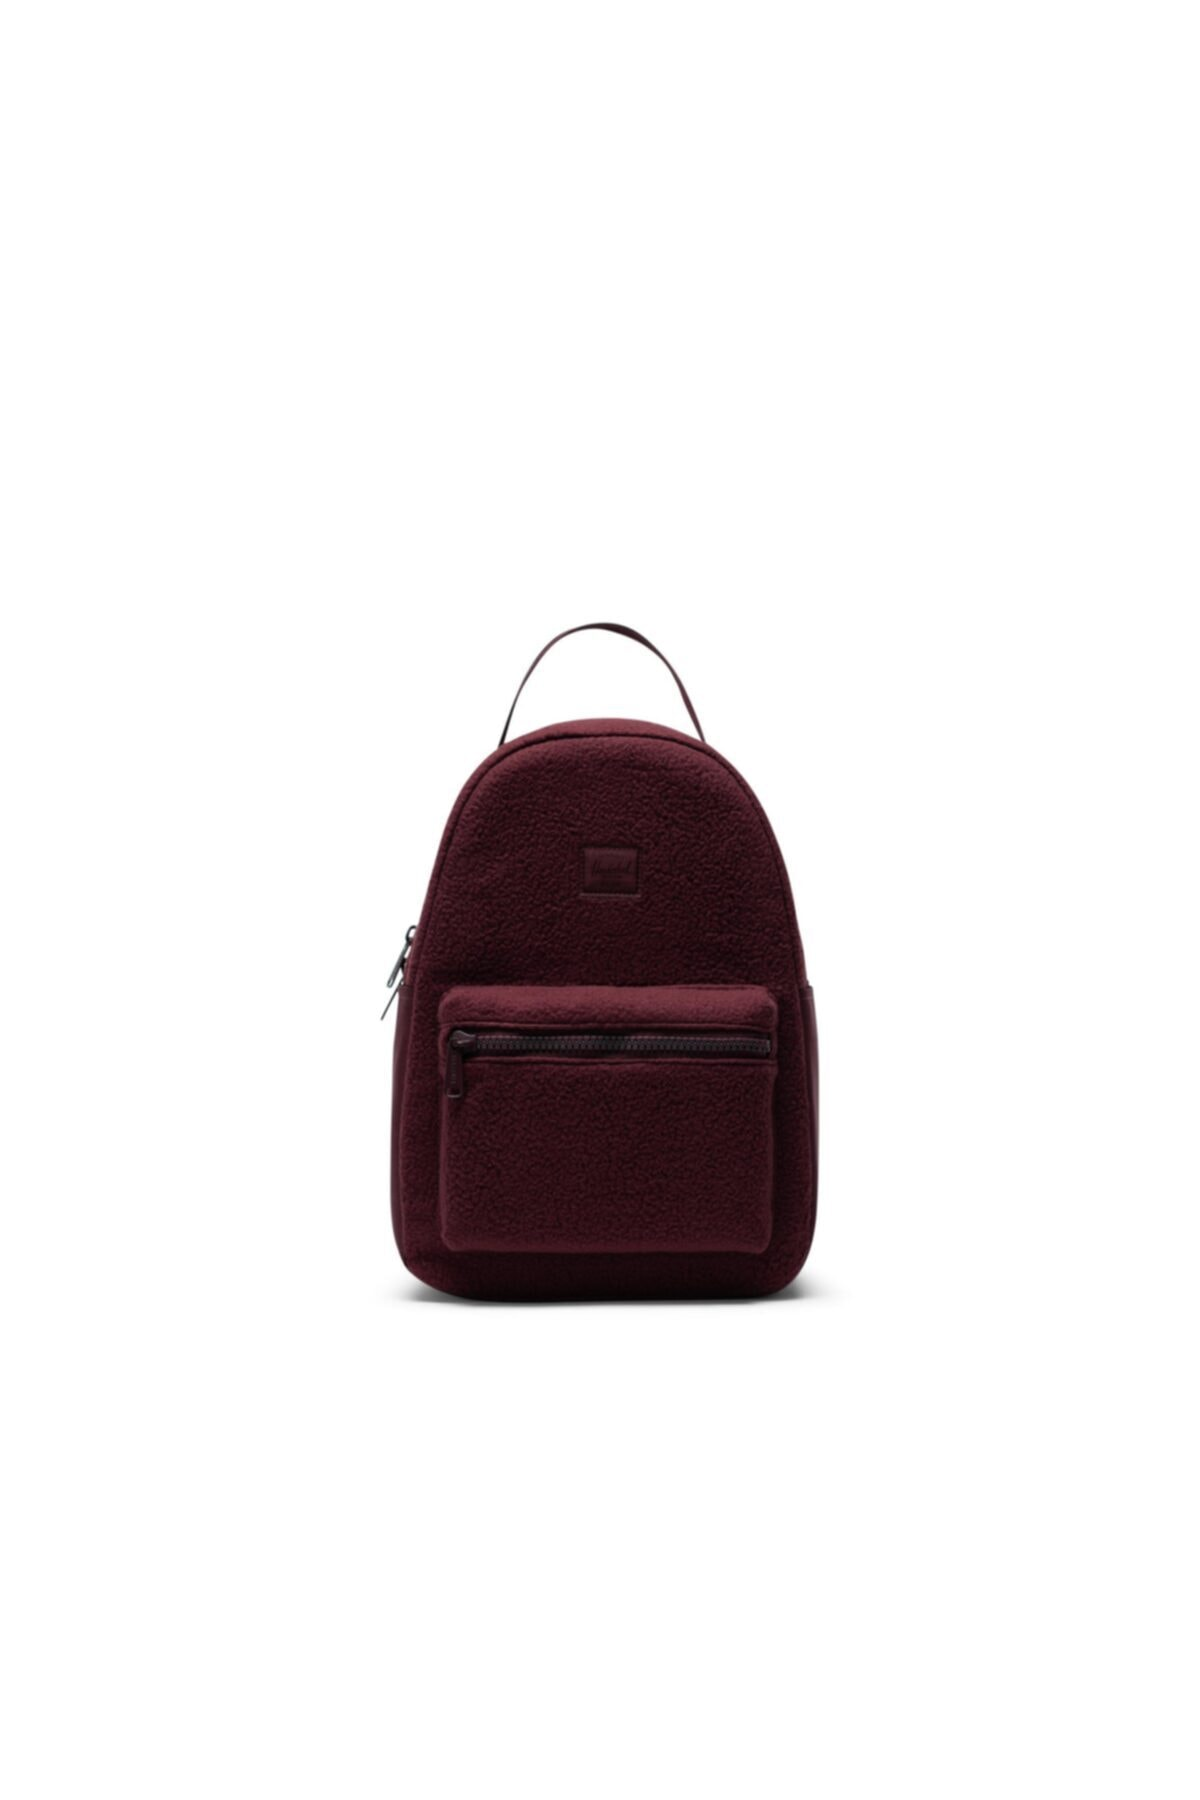 Herschel Supply Co. Nova Small Sherpa Plum Sırt Çantası 1